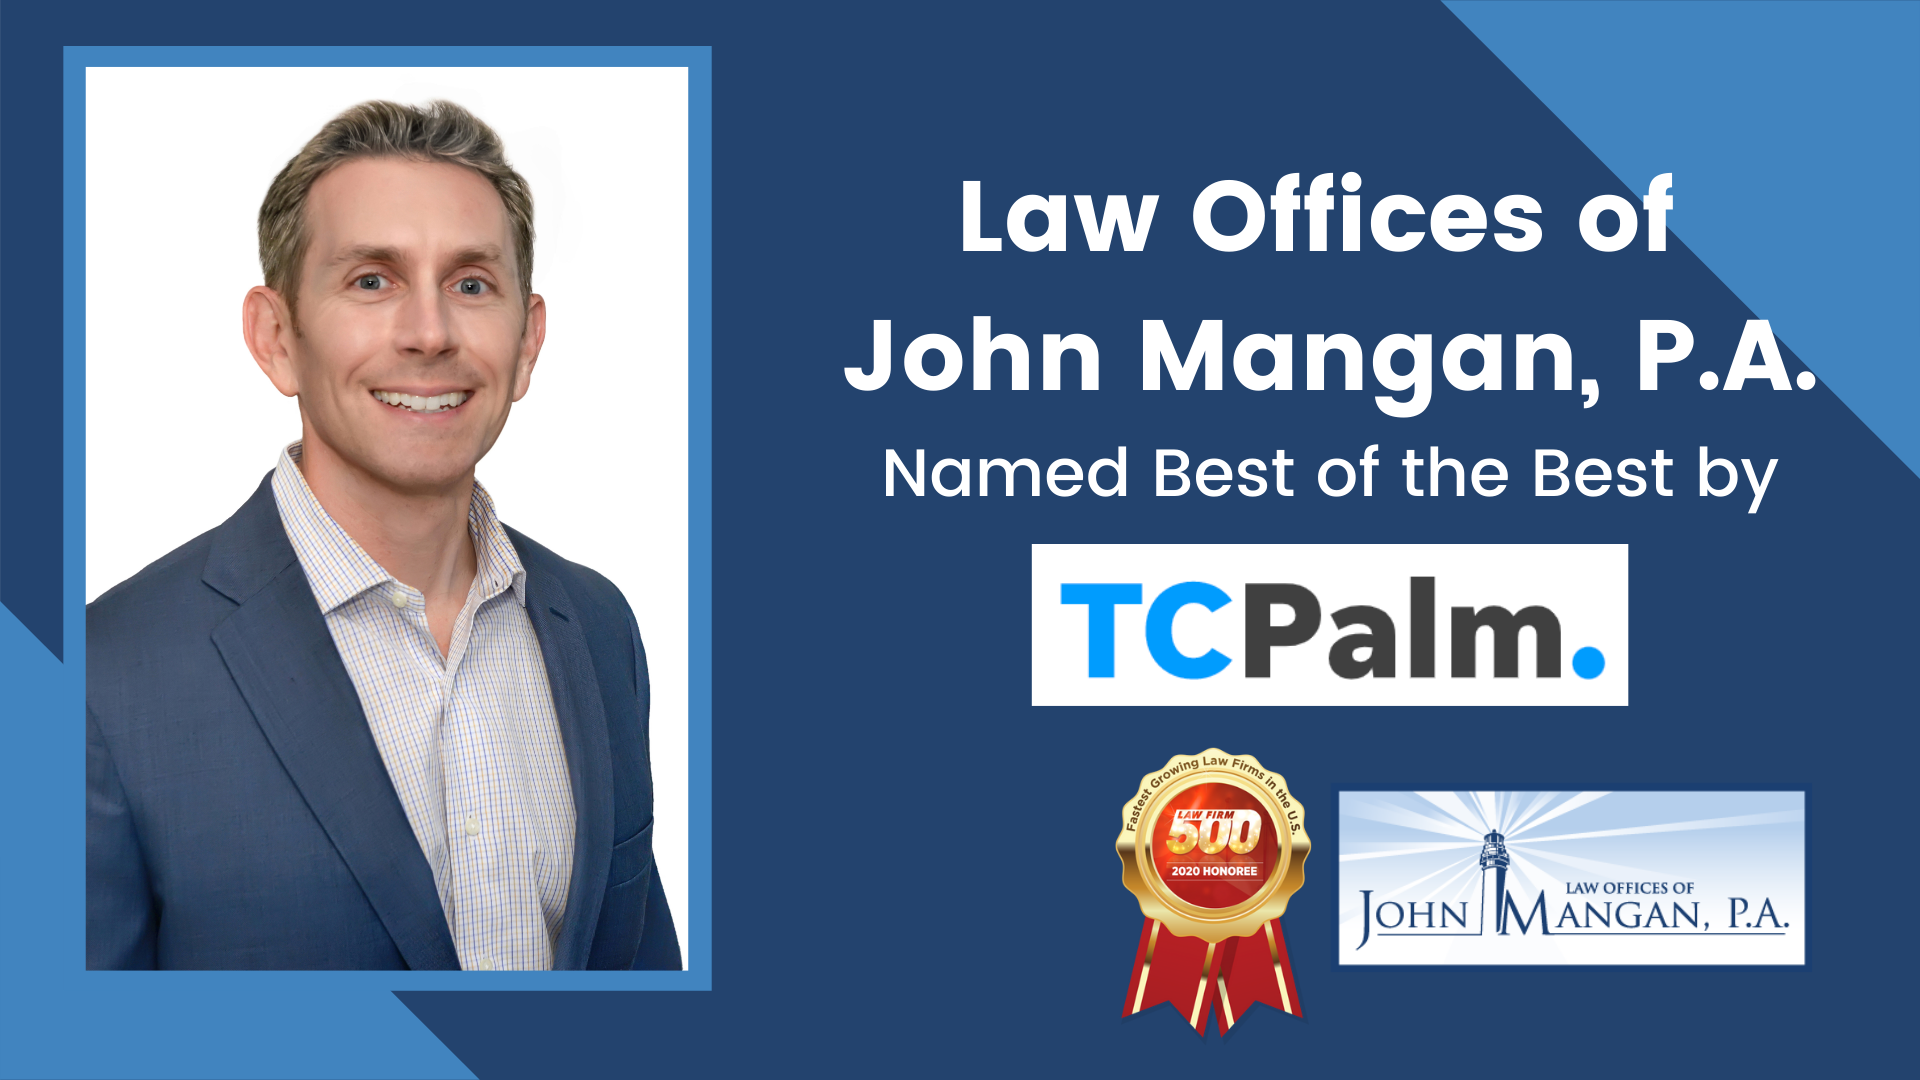 Law-Offices-of-John-Mangan-PA-Named-Best-of-the-Best-by-TCPalm